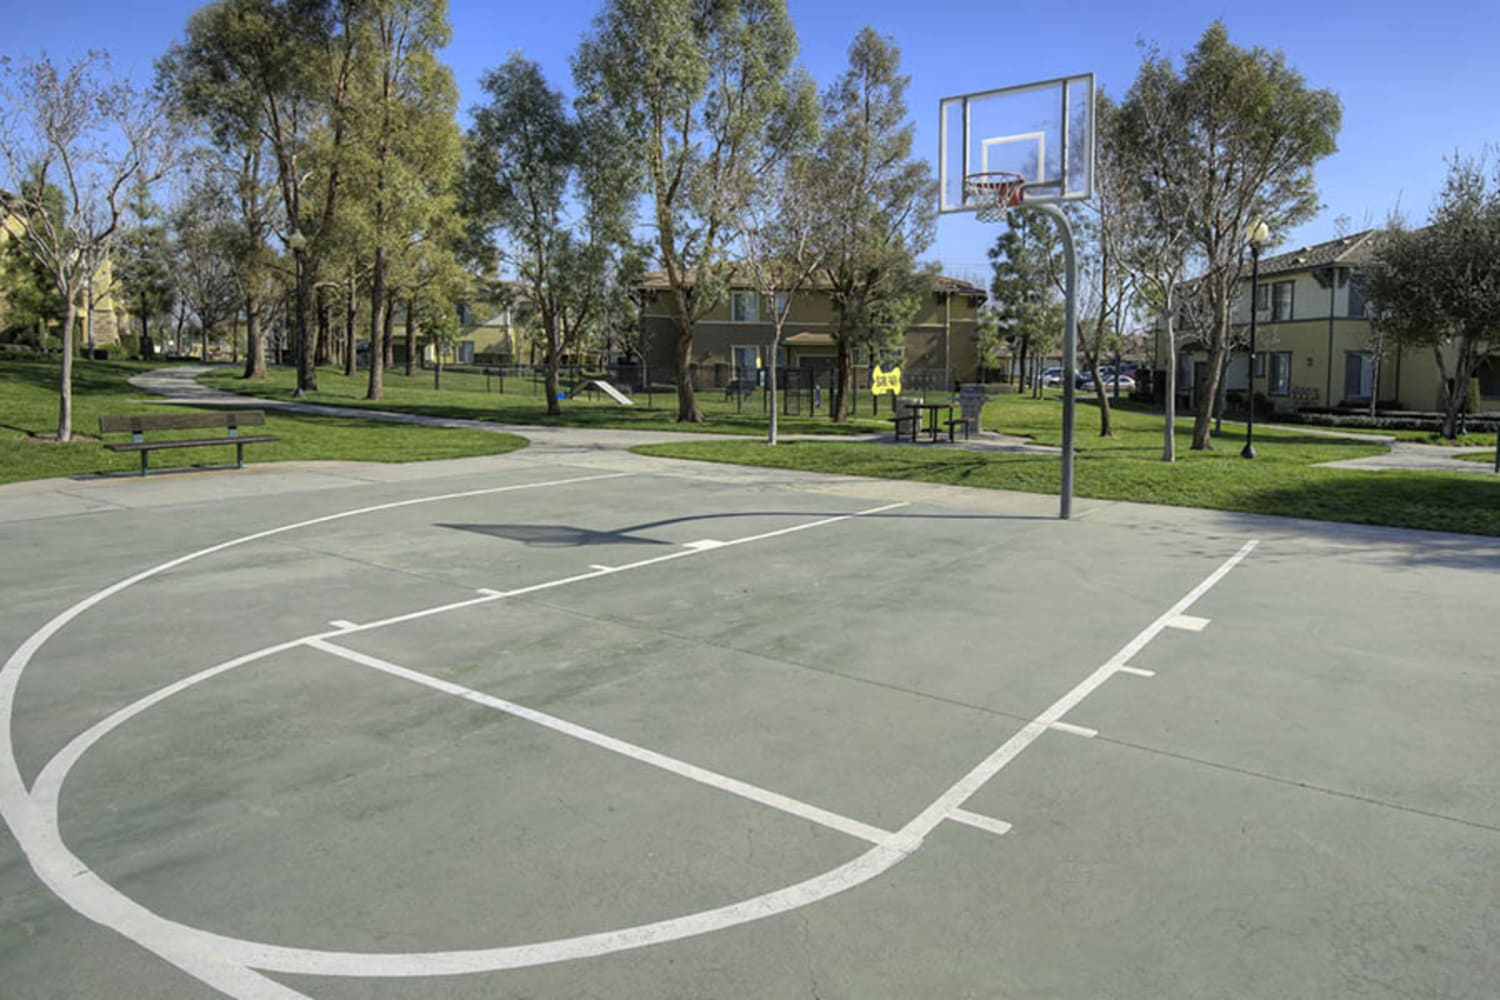 Camino Real offers and onsite basketball court in Rancho Cucamonga, California